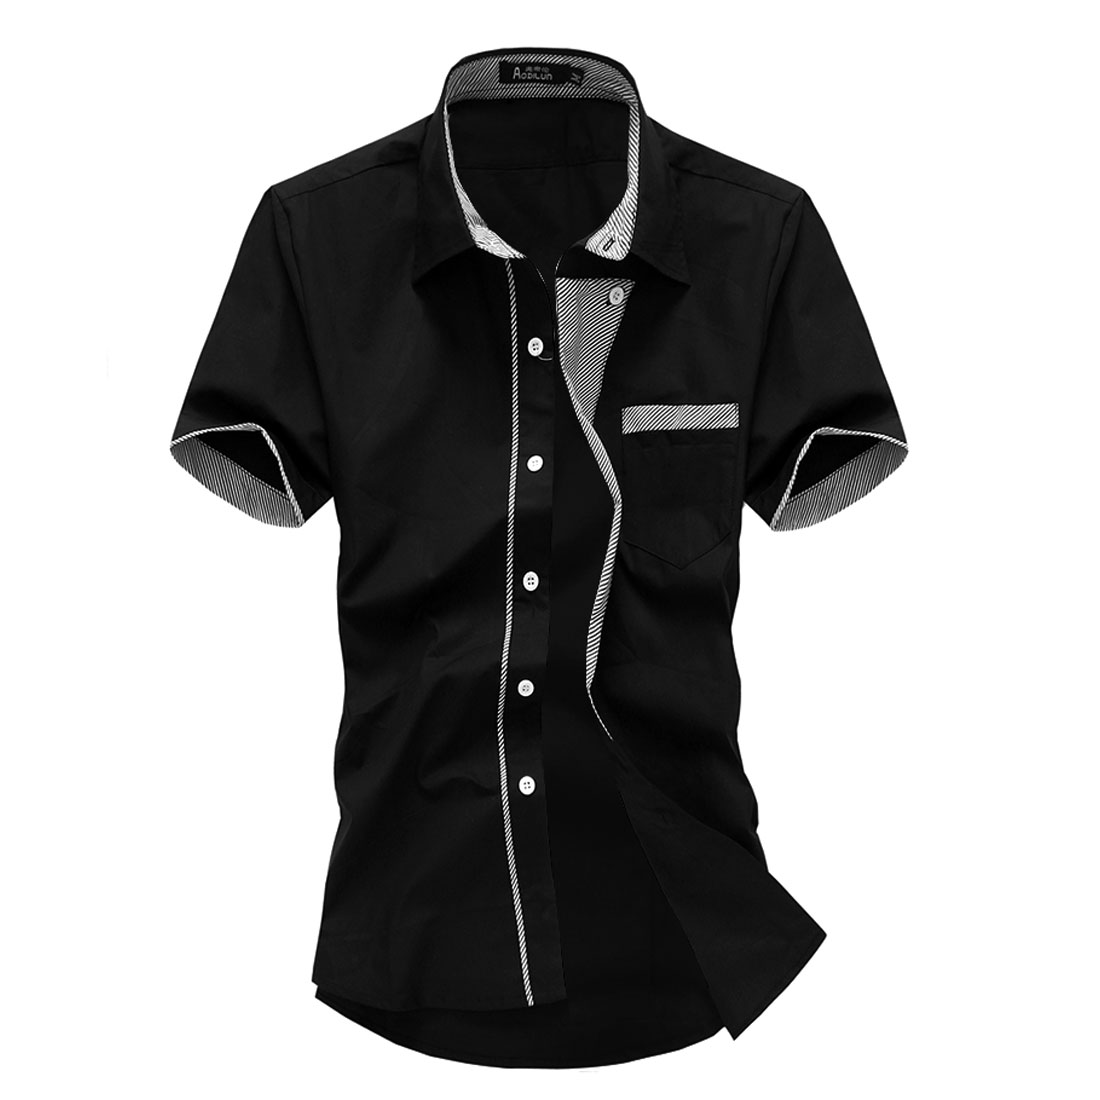 Men Point Collar Button Up Short Sleeve Chest Pocket Shirt Black M